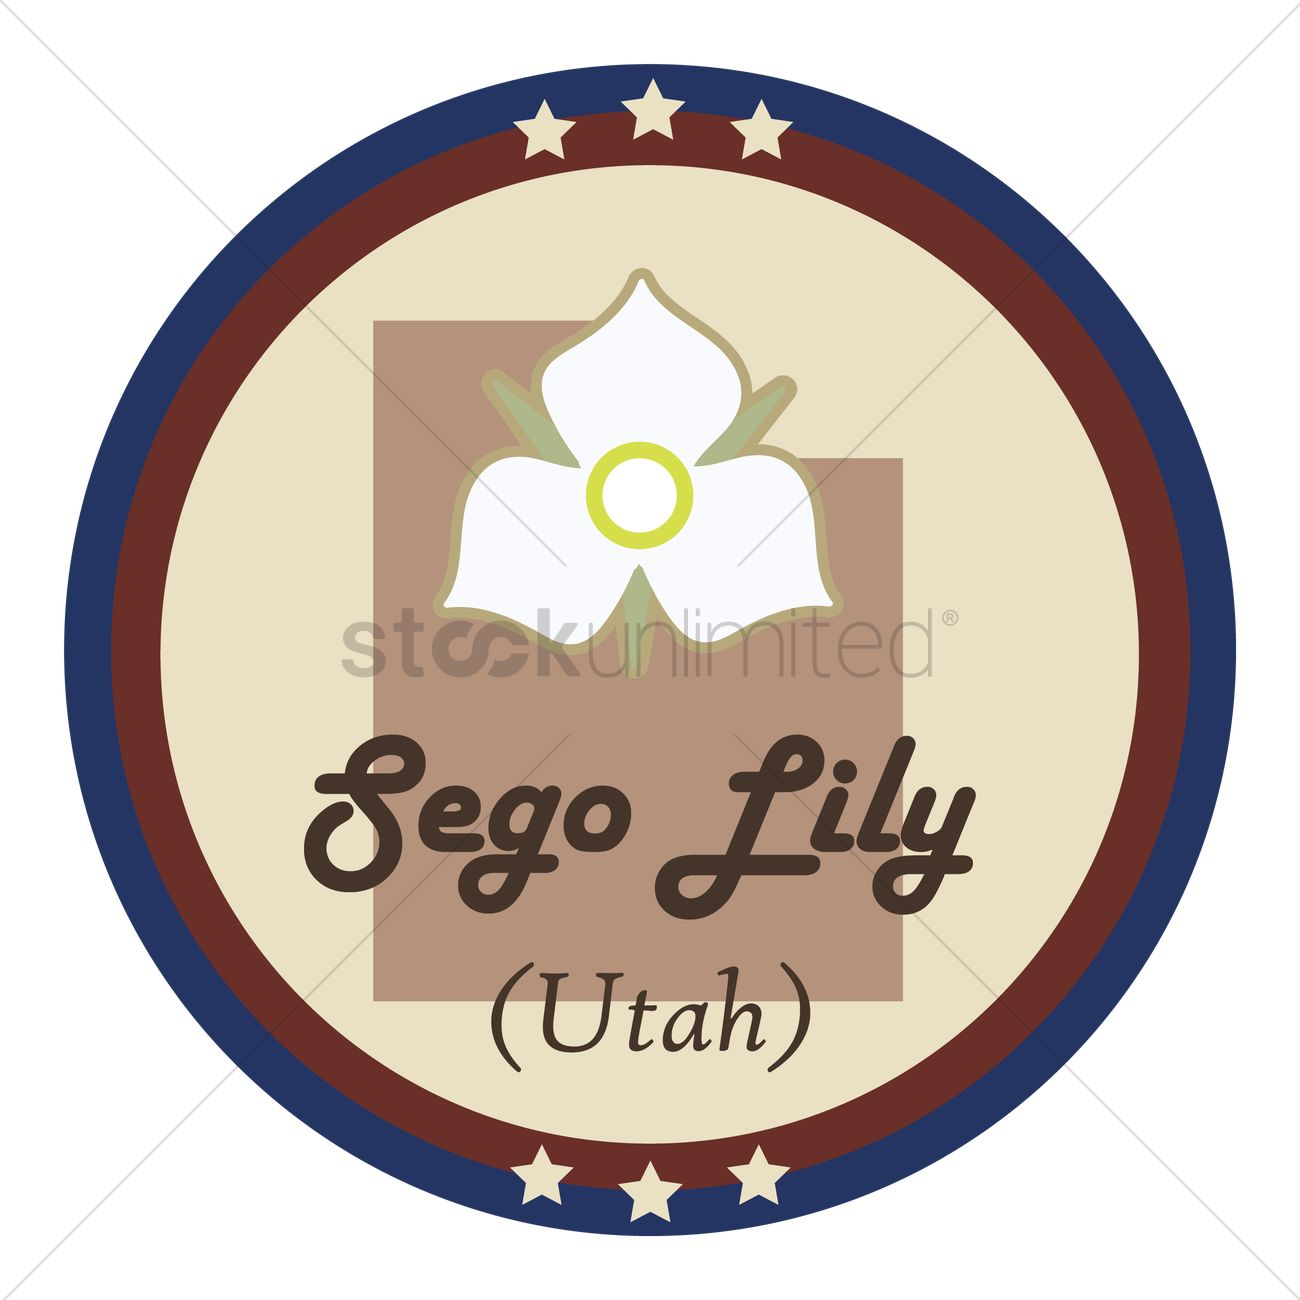 Utah state with sego lily flower vector image 1557506 stockunlimited utah state with sego lily flower vector graphic izmirmasajfo Choice Image